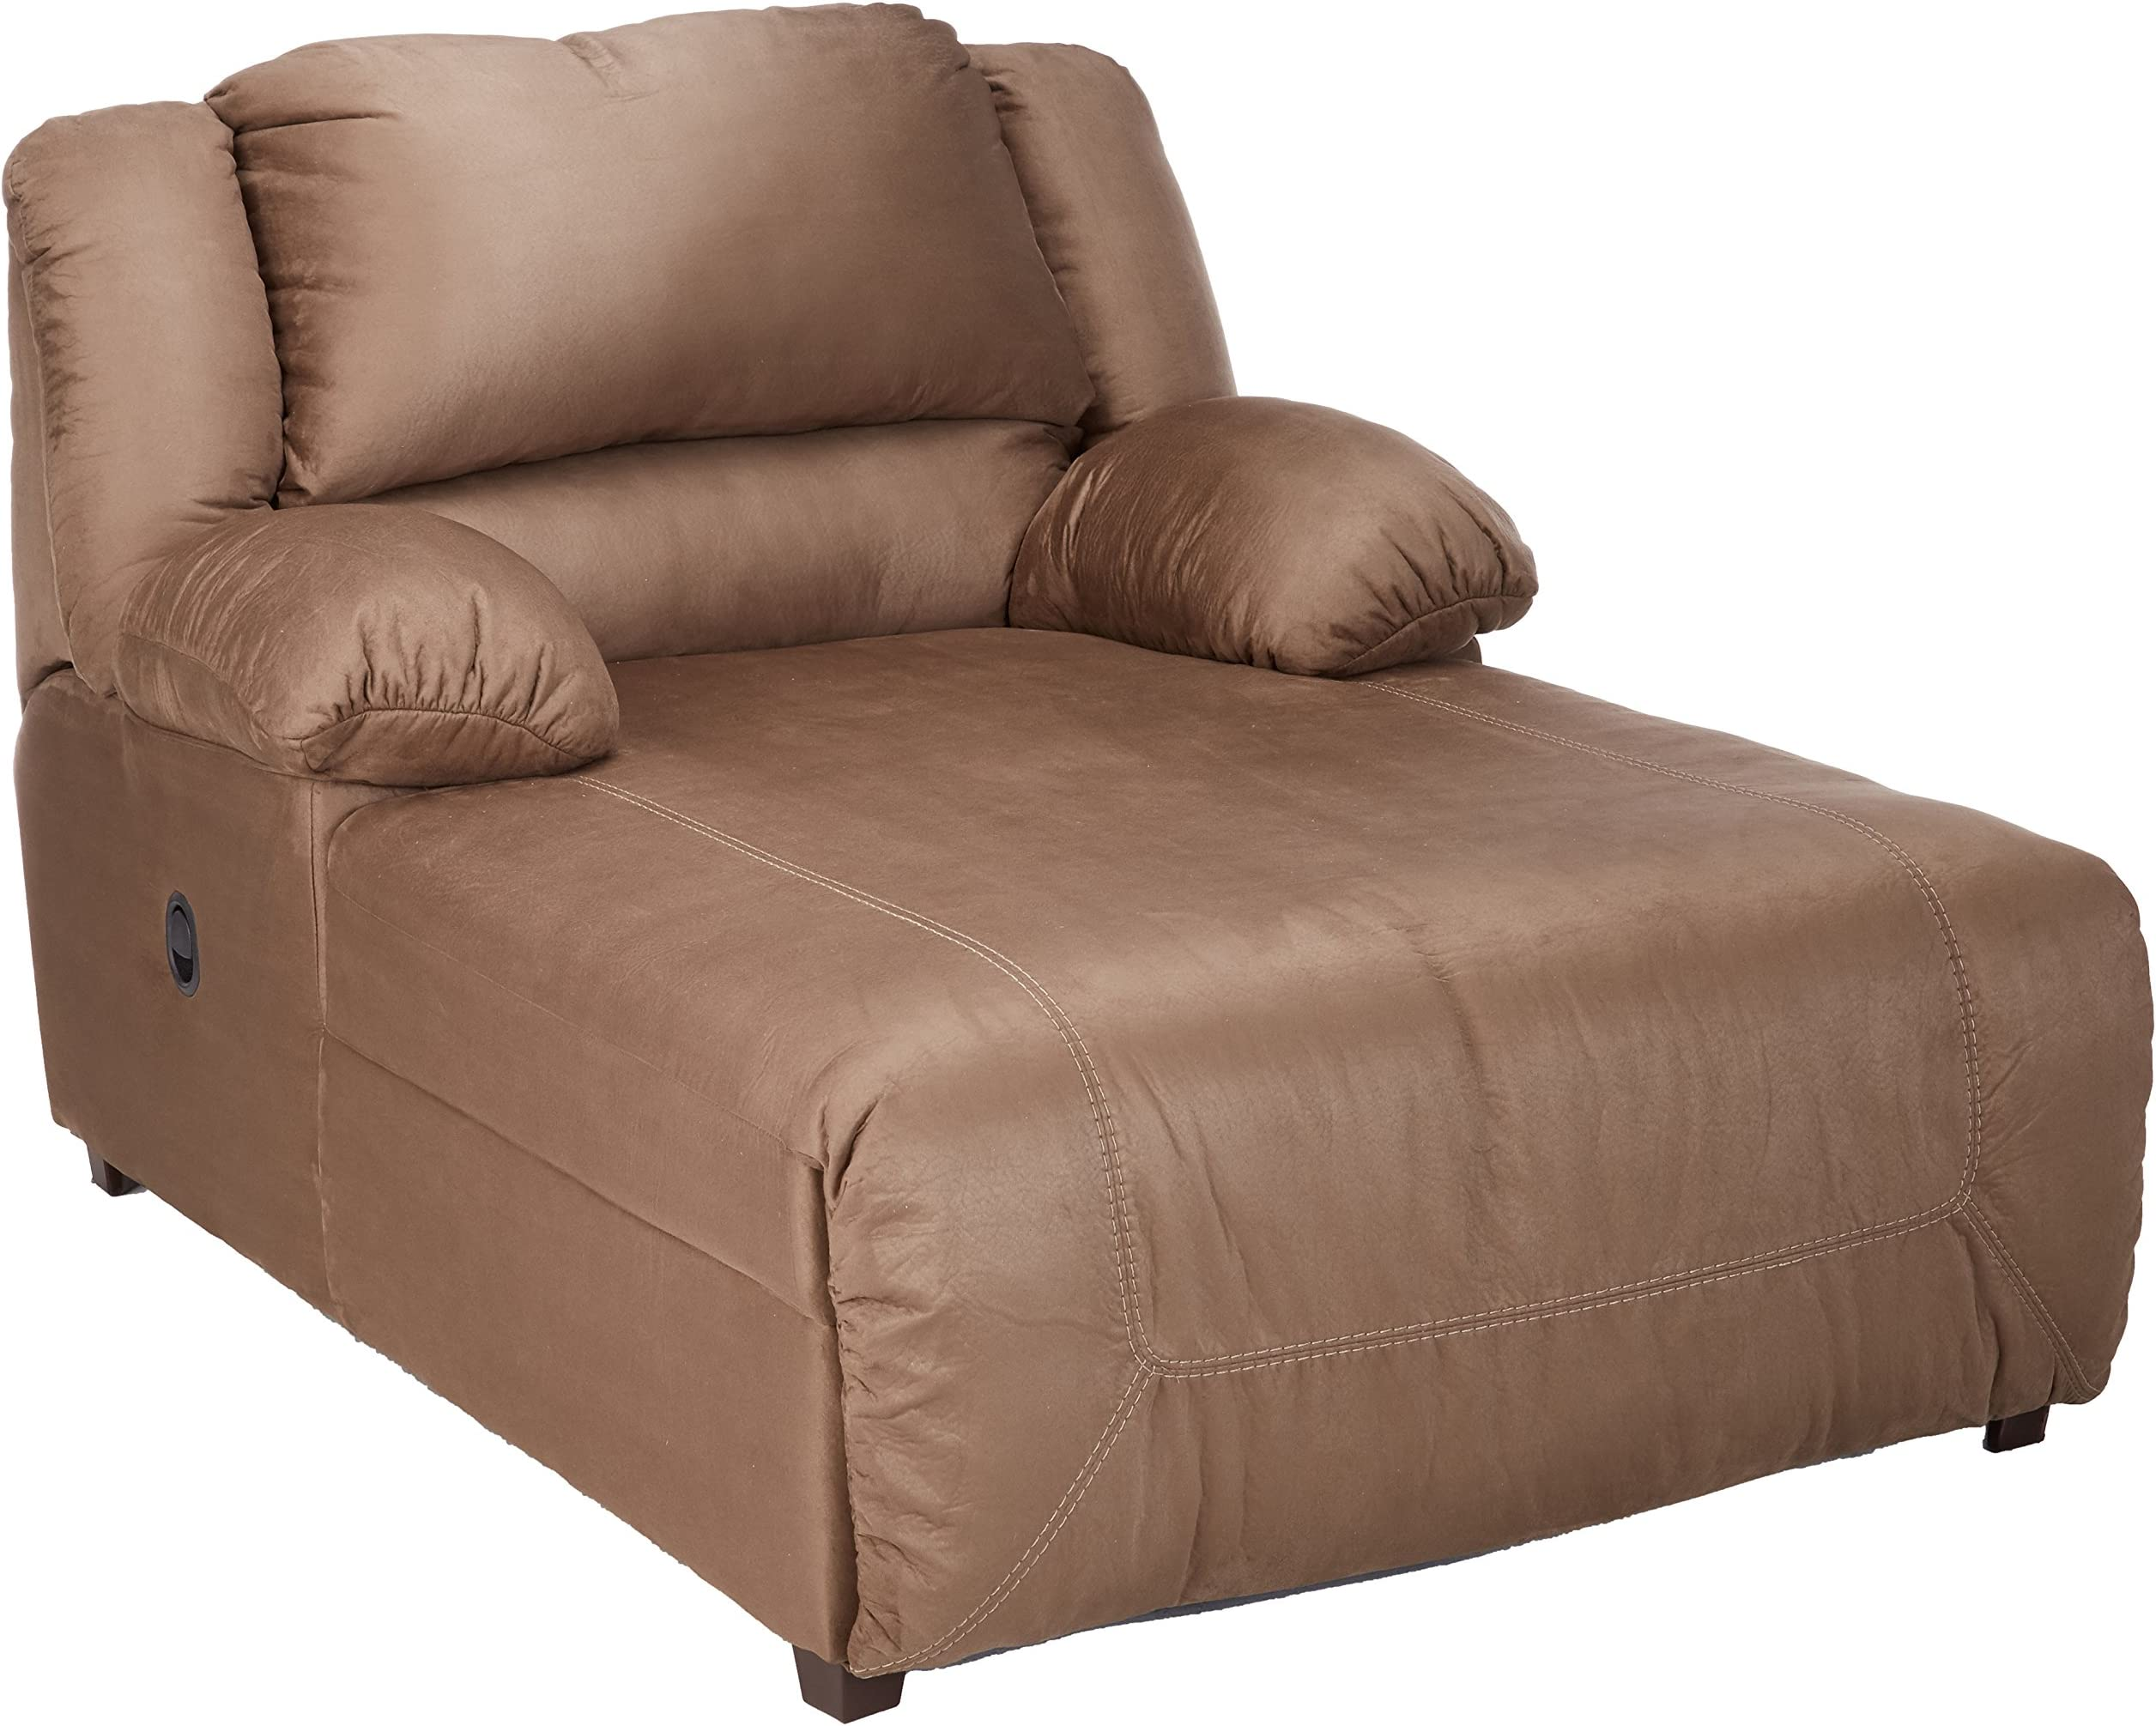 Ashley Furniture ...  sc 1 st  Amazon.com : chaise furniture - Sectionals, Sofas & Couches